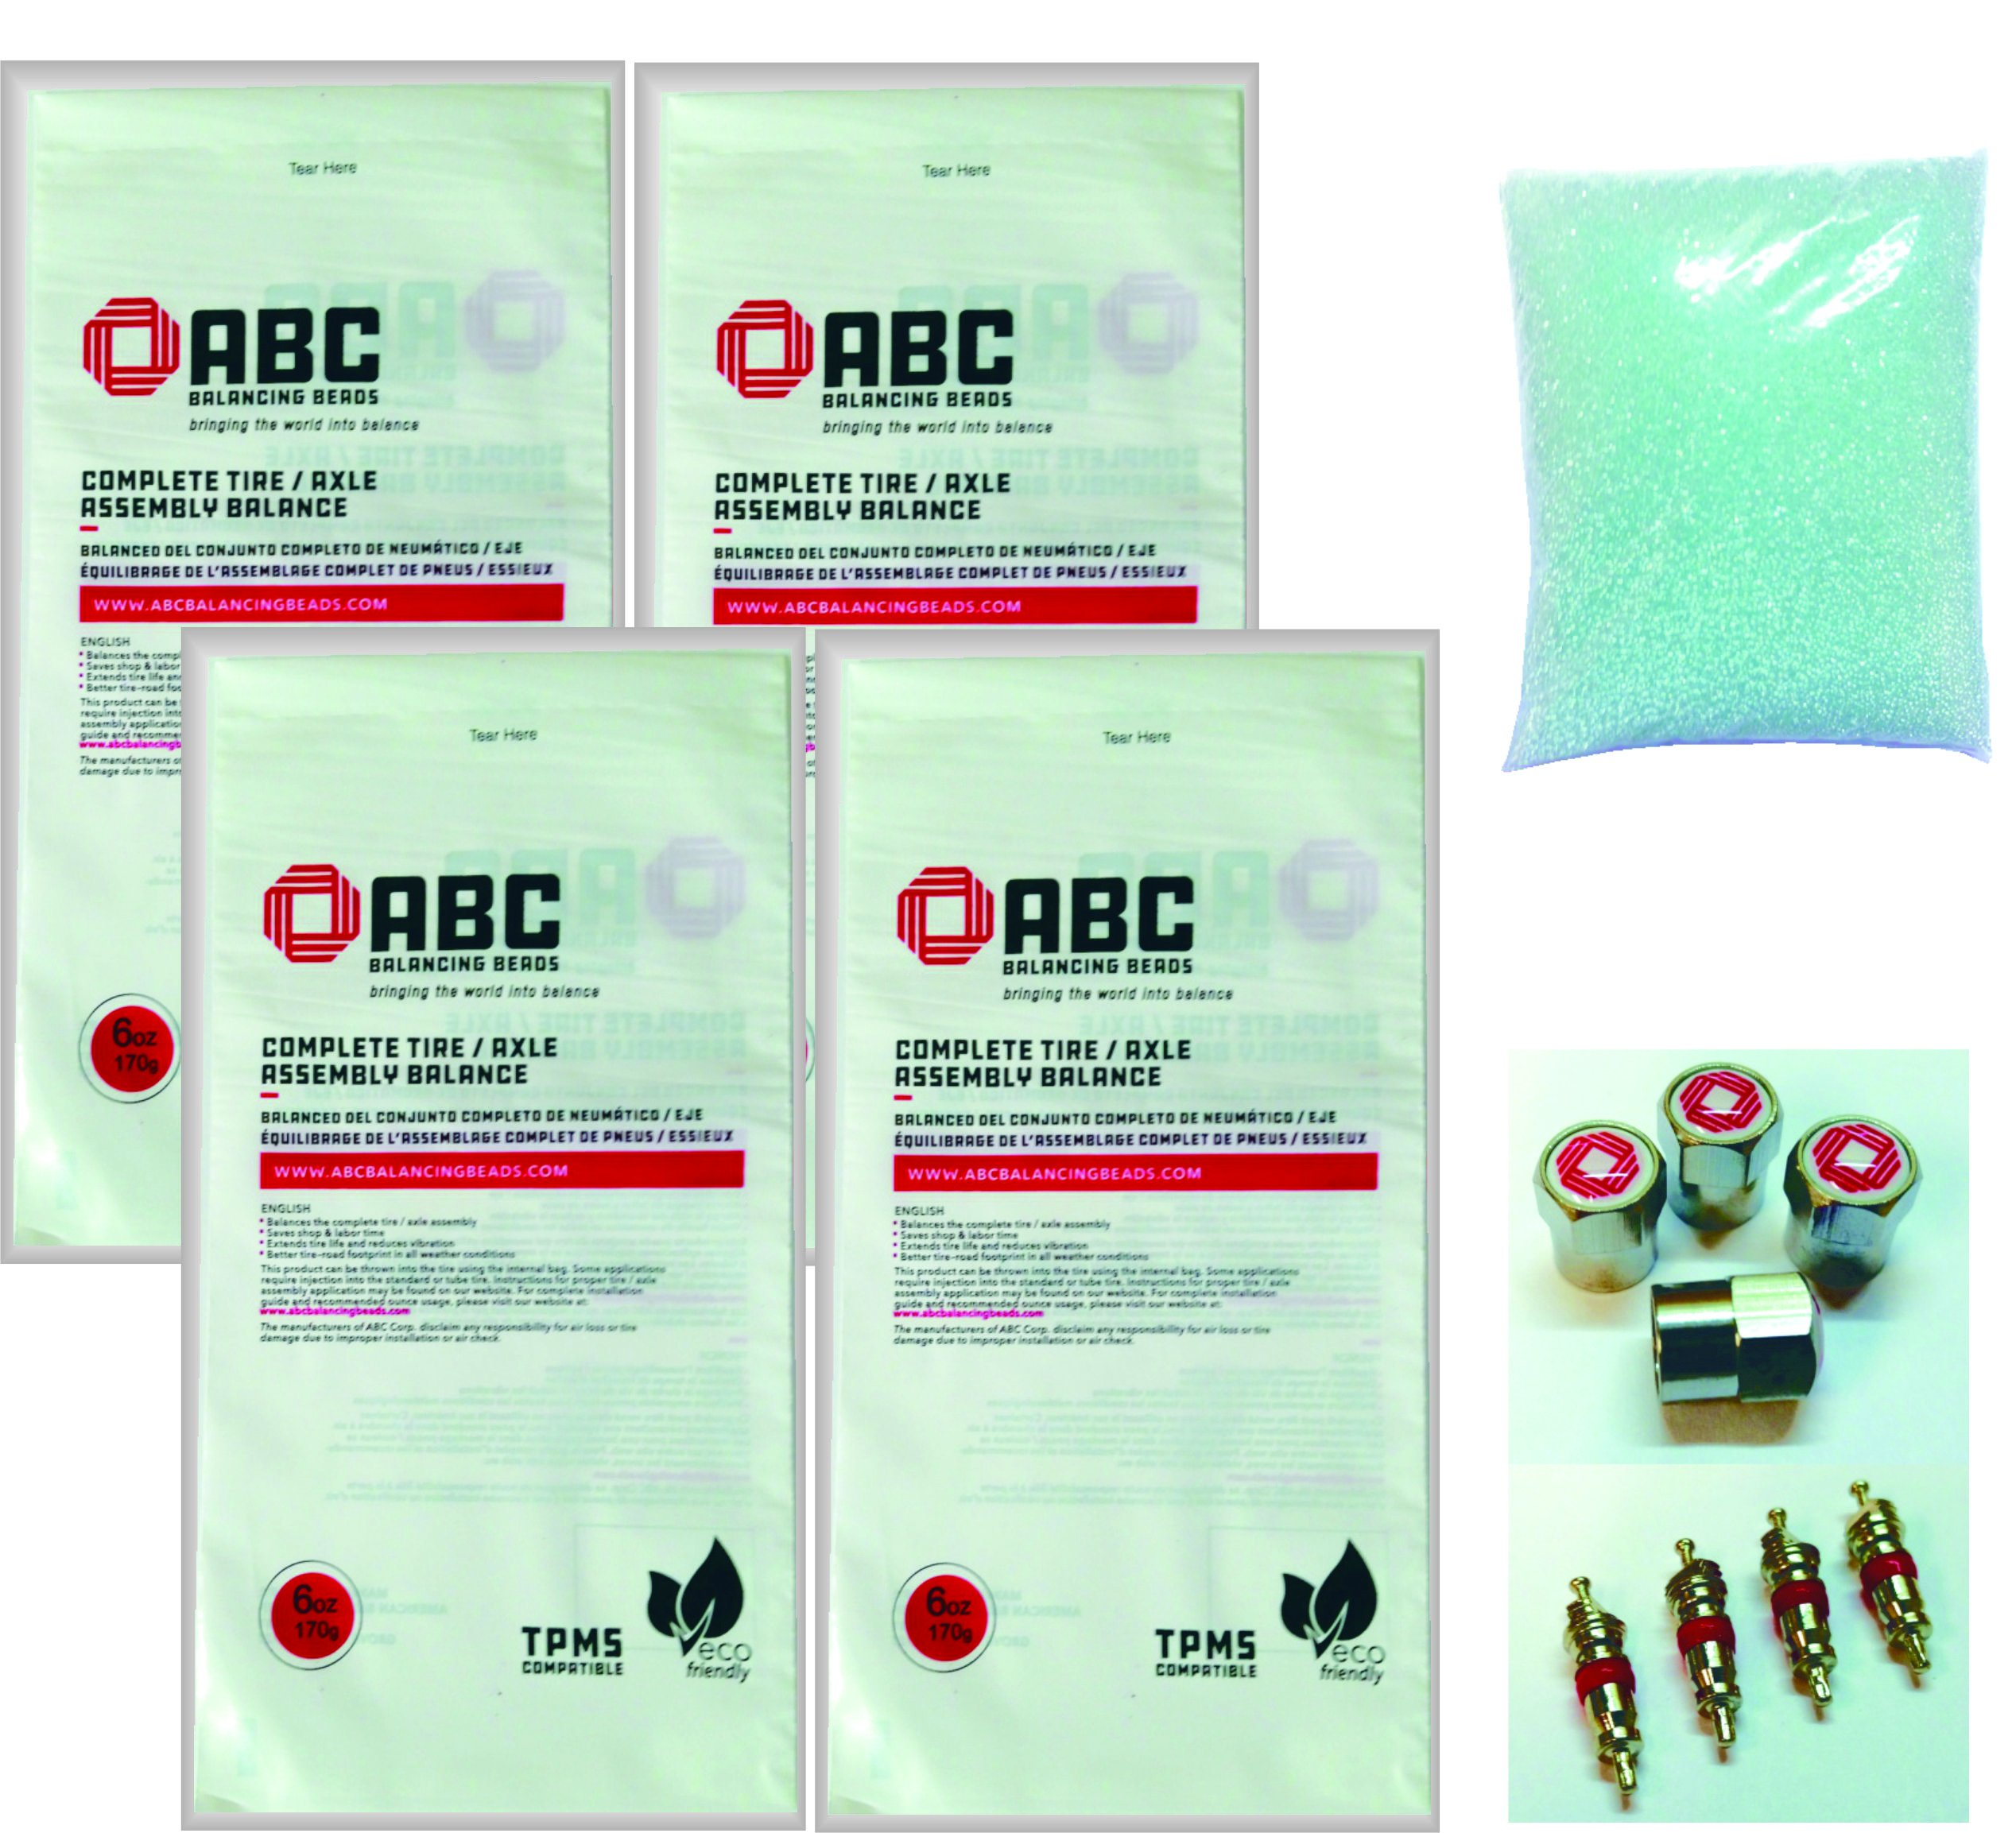 ABC Balancing Beads DIY-6 - For Pick Up Truck - Kit contains 4 x 6oz Bags (24oz)of ABC Balancing Beads, 4 Valve Cores, 4 ABC Valve Caps. by American Balancing Corp